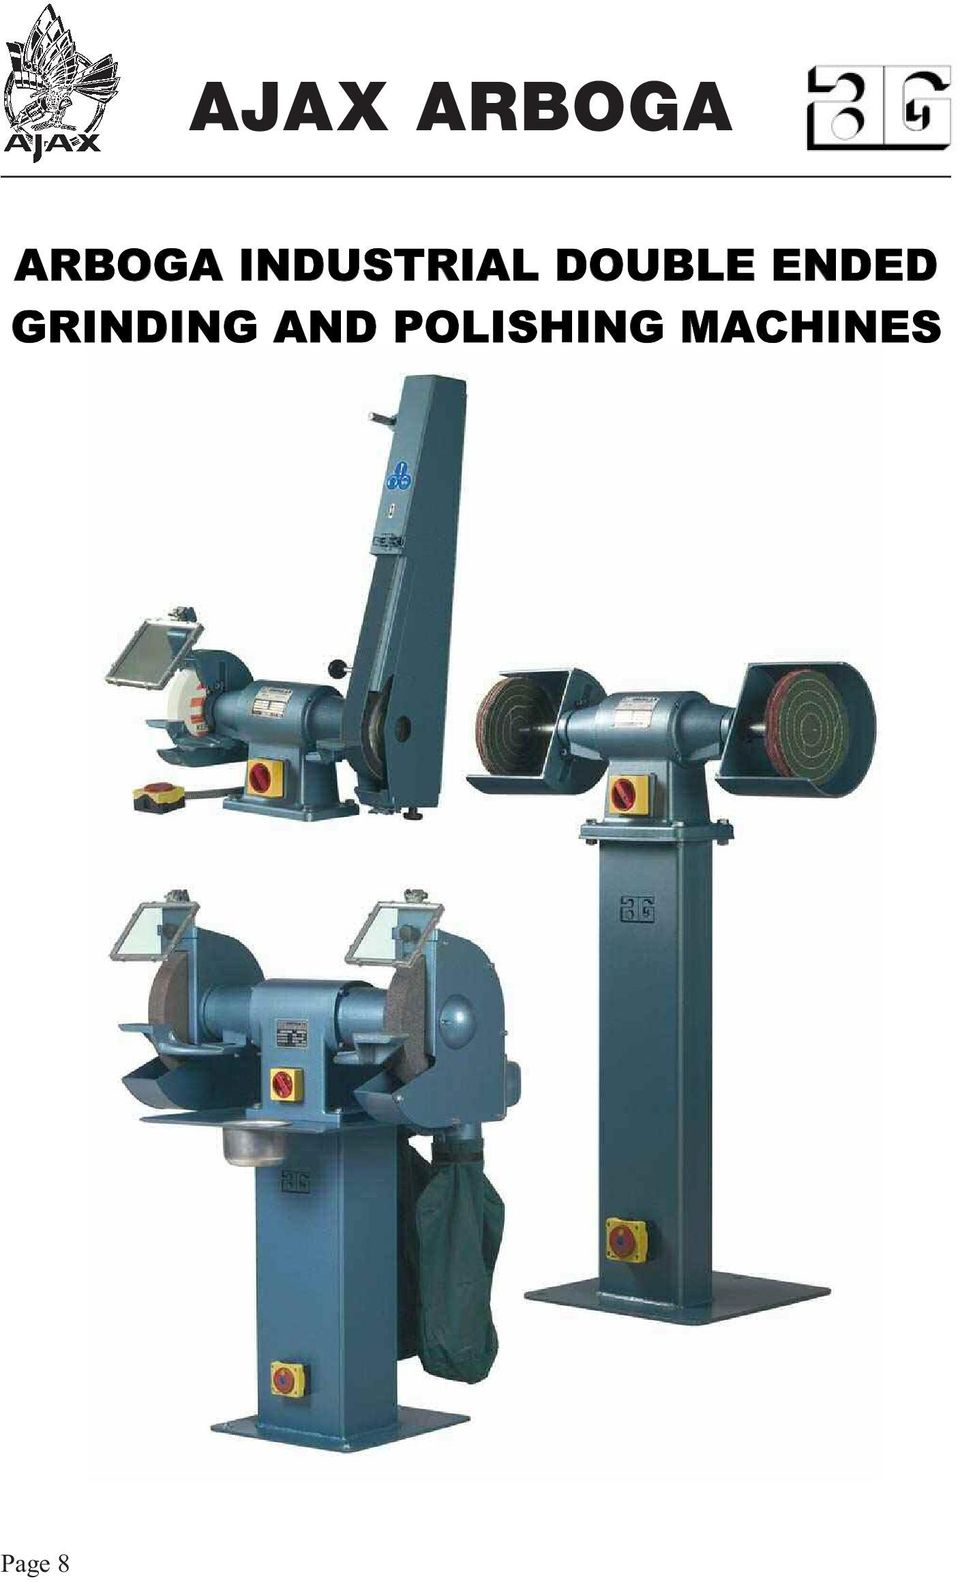 Ajax Arboga Pdf. 9 Art E308 Epu312 Wku12 Exhaust The Arboga Grinding And Polishing Machines Are Manufactured For Heavy Duty Use In Industry. Wiring. Br Tool Bench Grinder Wiring Diagram At Scoala.co